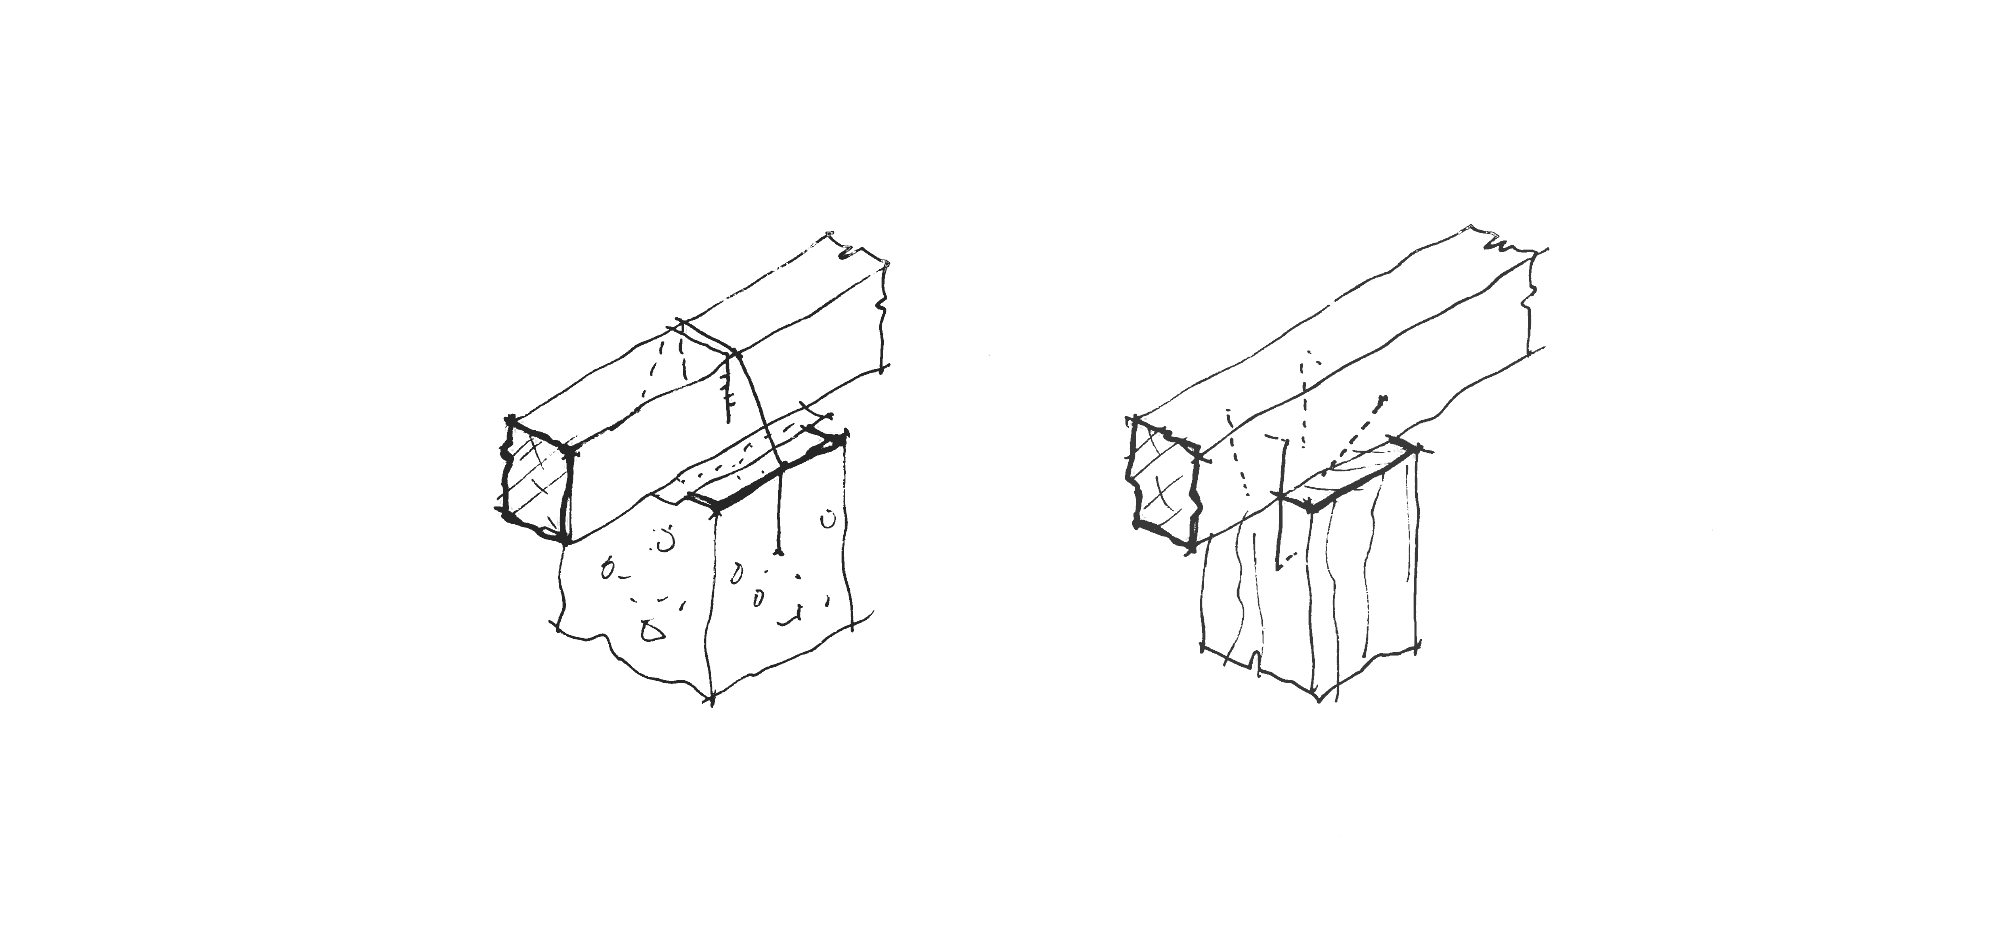 NZS 3604-type pile foundations » Seismic Resilience